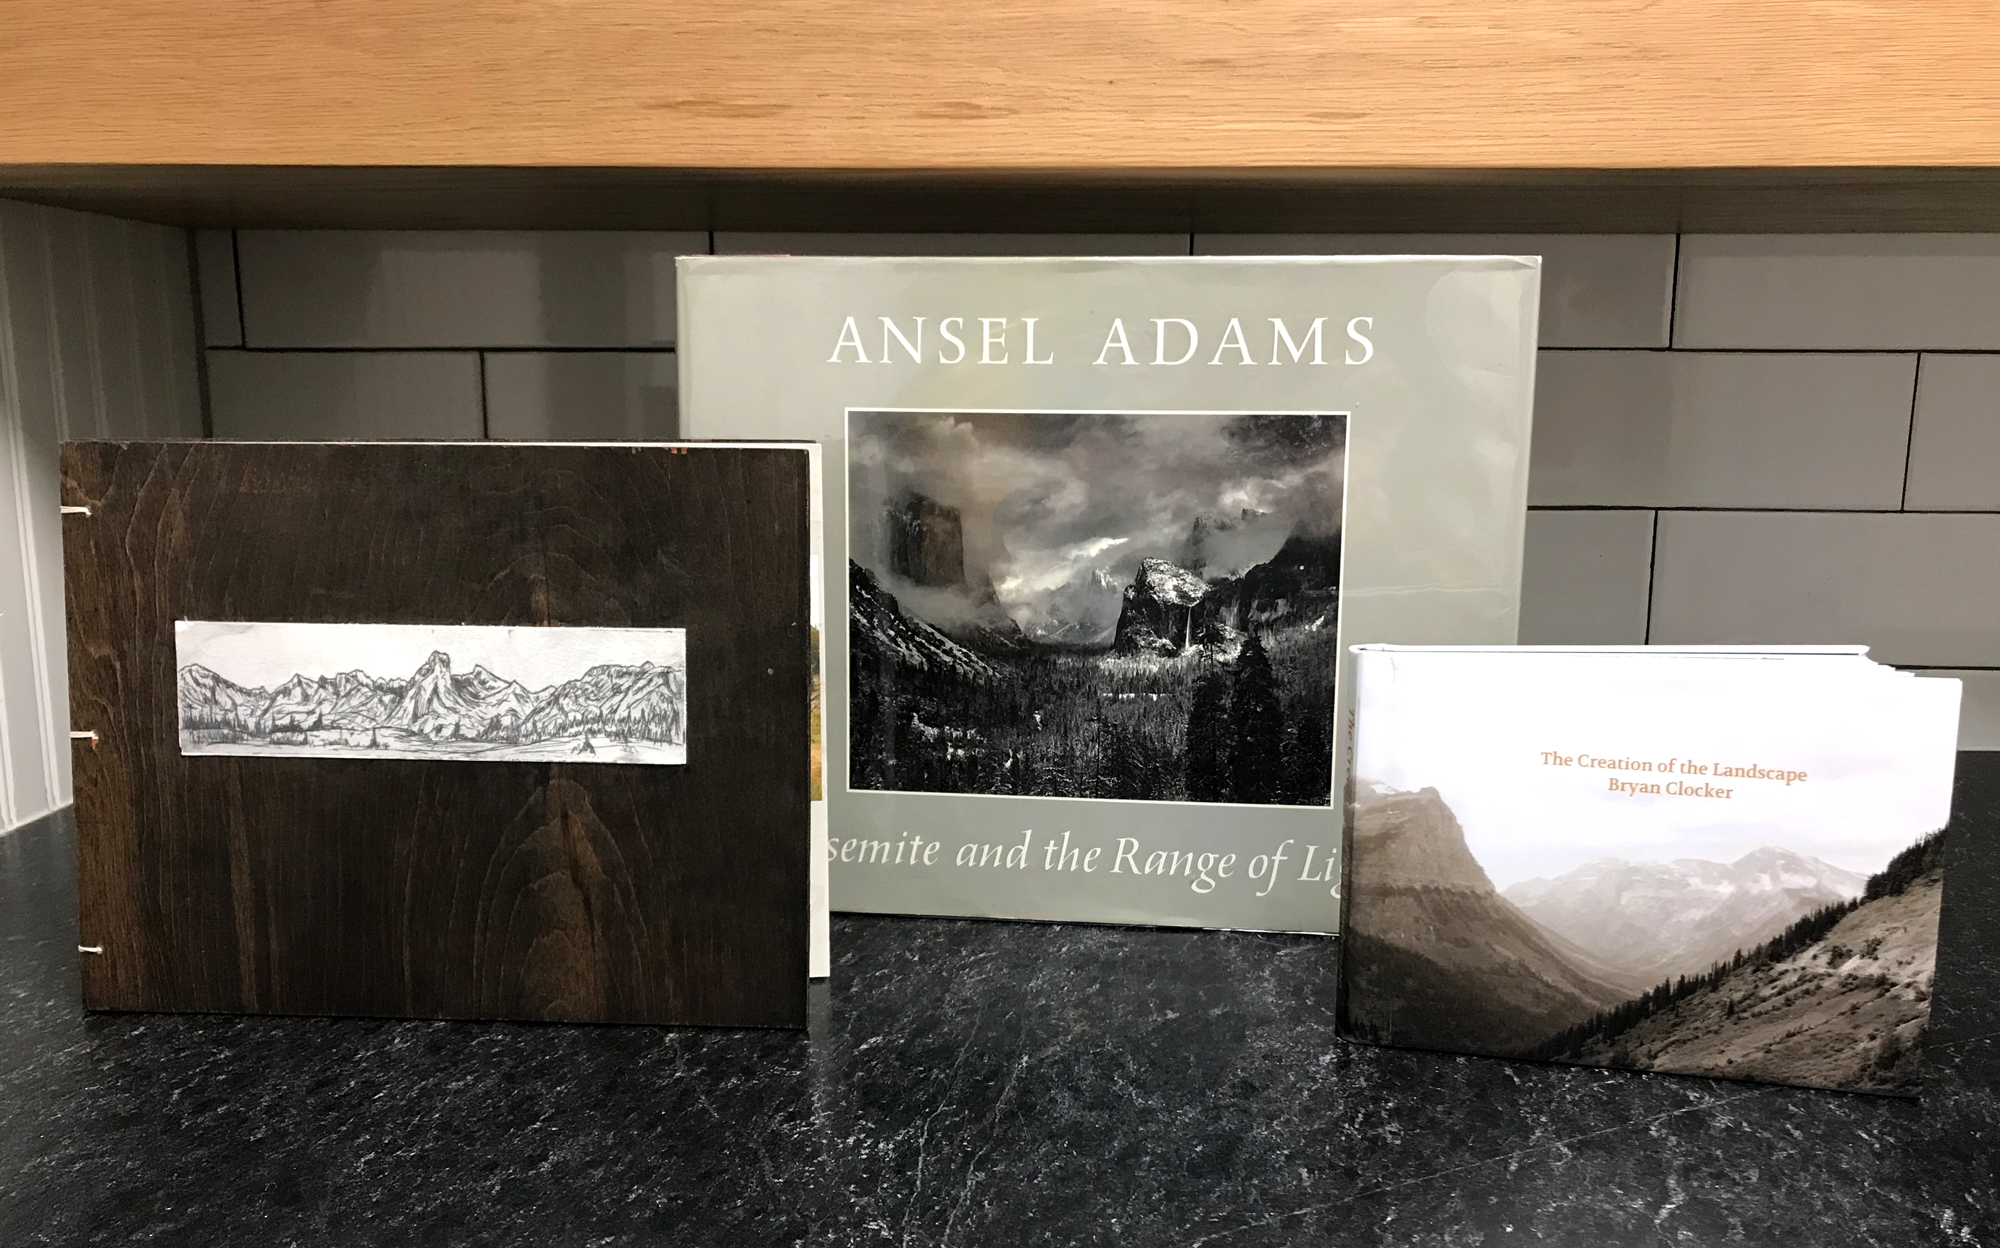 The two books I made along with my most prized Ansel Adams books. From left to right;  The Grandeur of Wyoming, Ansel Adams Yosemite and the Range of Light, The Creation of the Landscape.